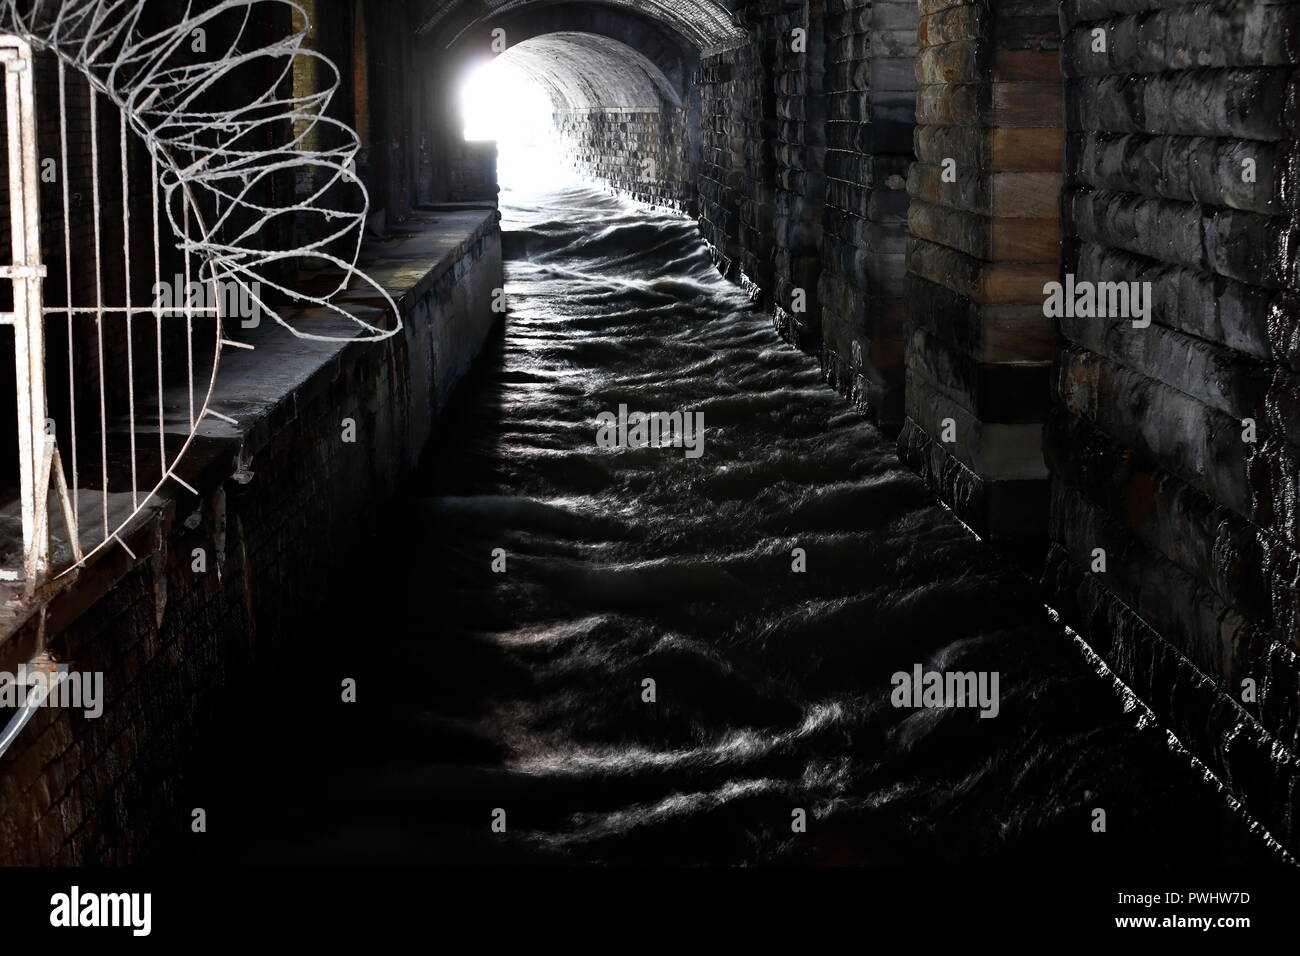 Tunnels beneath Leeds Railway Station with the River Aire running through , known as the Dark Arches. Stock Photo